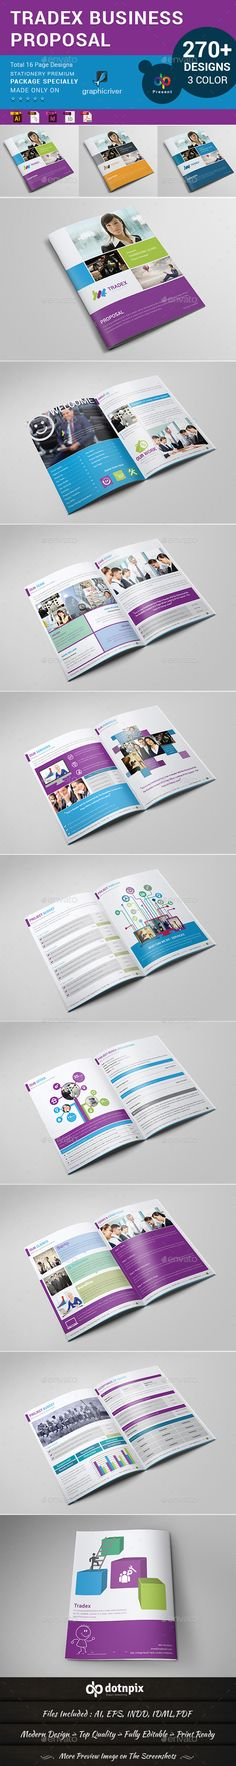 Tradex Business Propsal Template. Download: http://graphicriver.net/item/tradex-business-propsal/11026787?ref=ksioks